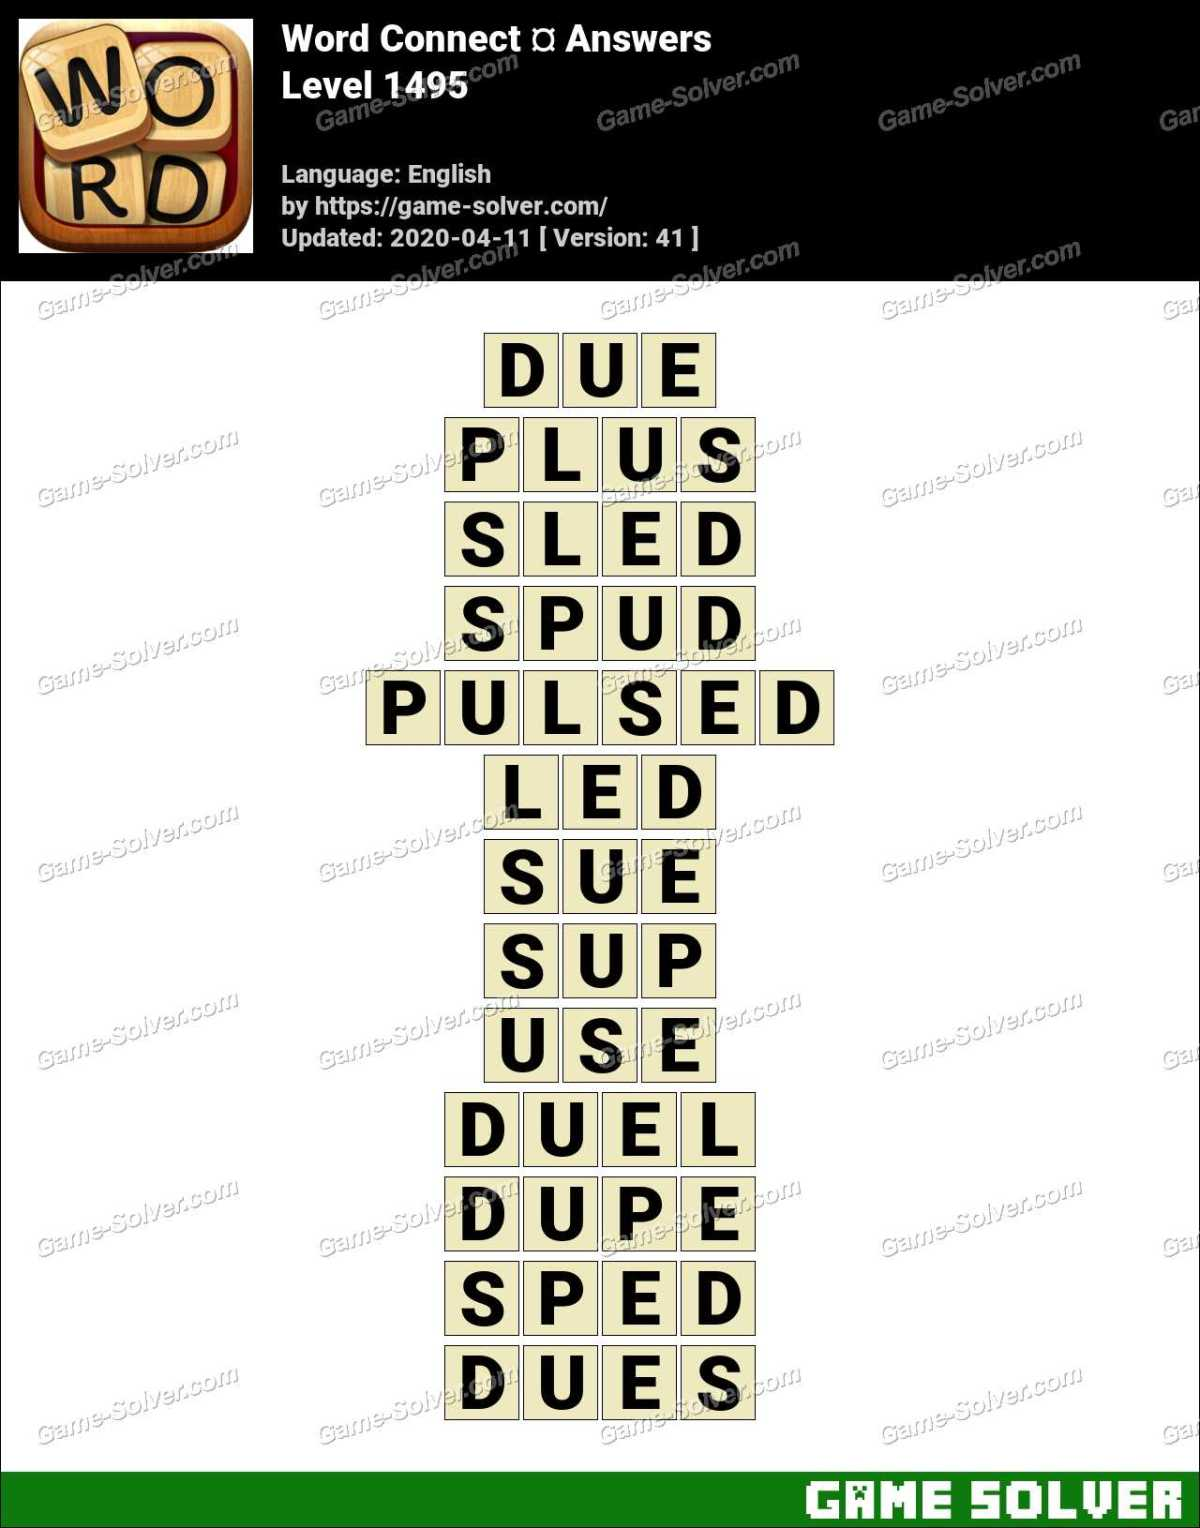 Word Connect Level 1495 Answers